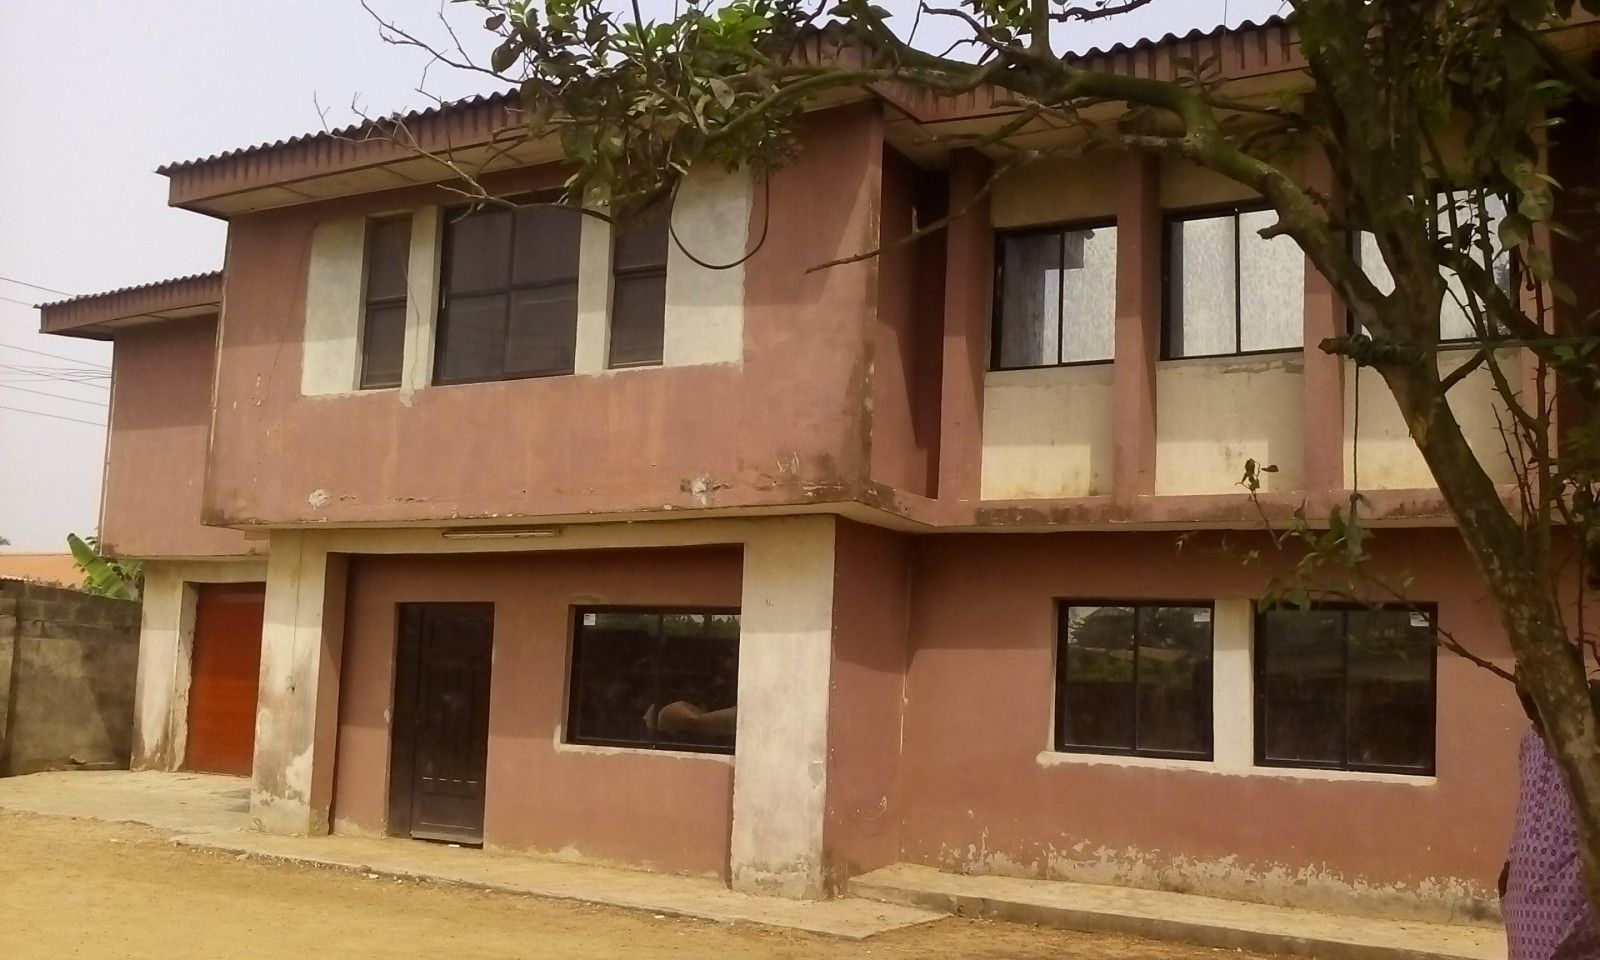 Zweifamilienhaus corporation housing water corporation 6 bedroom bedroom duplex property duplex ogun state ogun nigeria house forsale